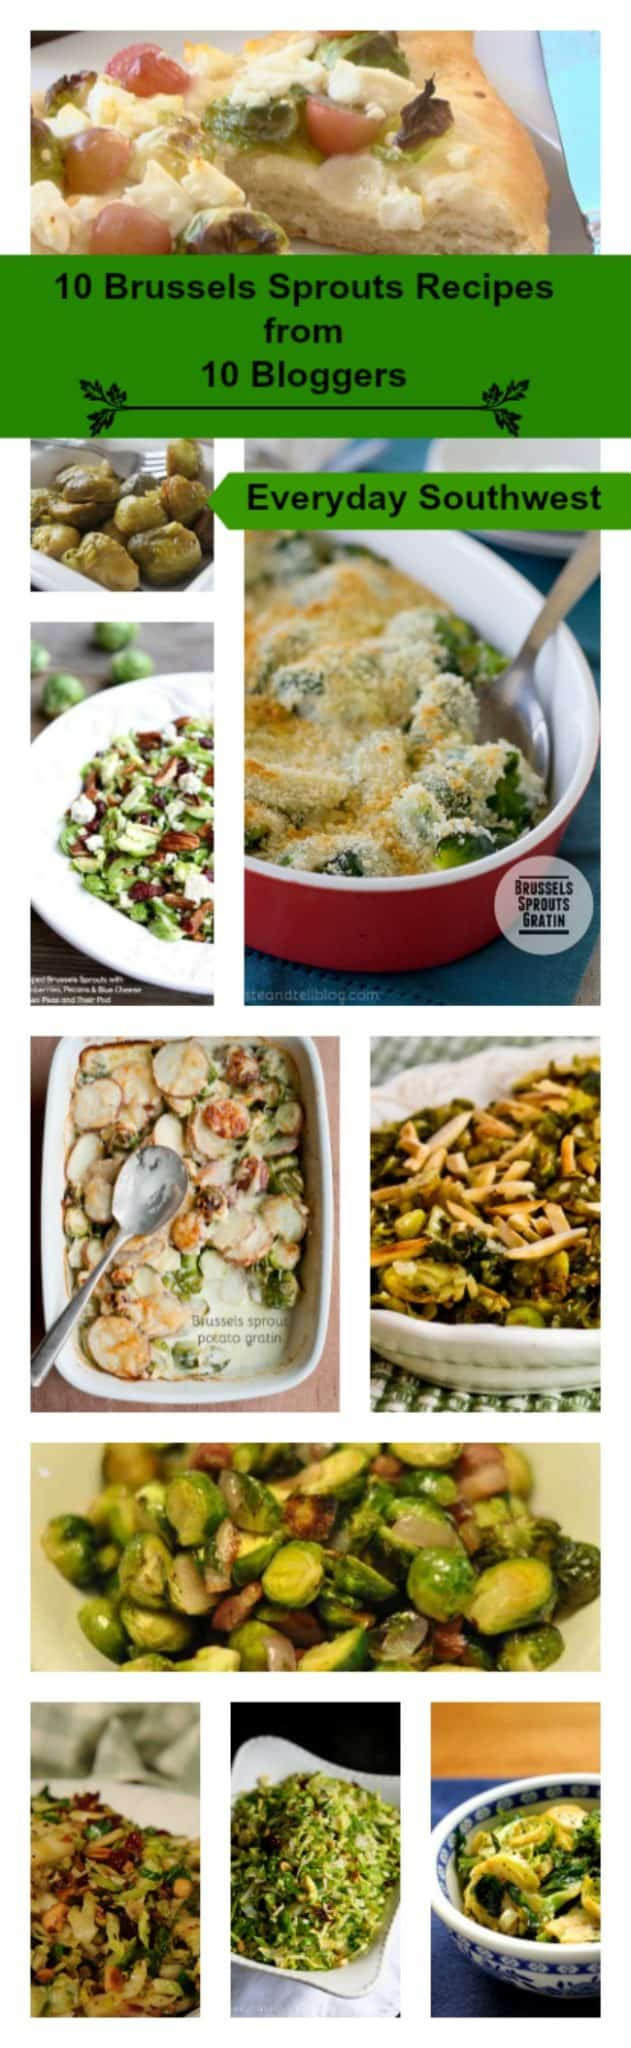 10 Brussels Sprouts Recipes with a Little Help From My Friends